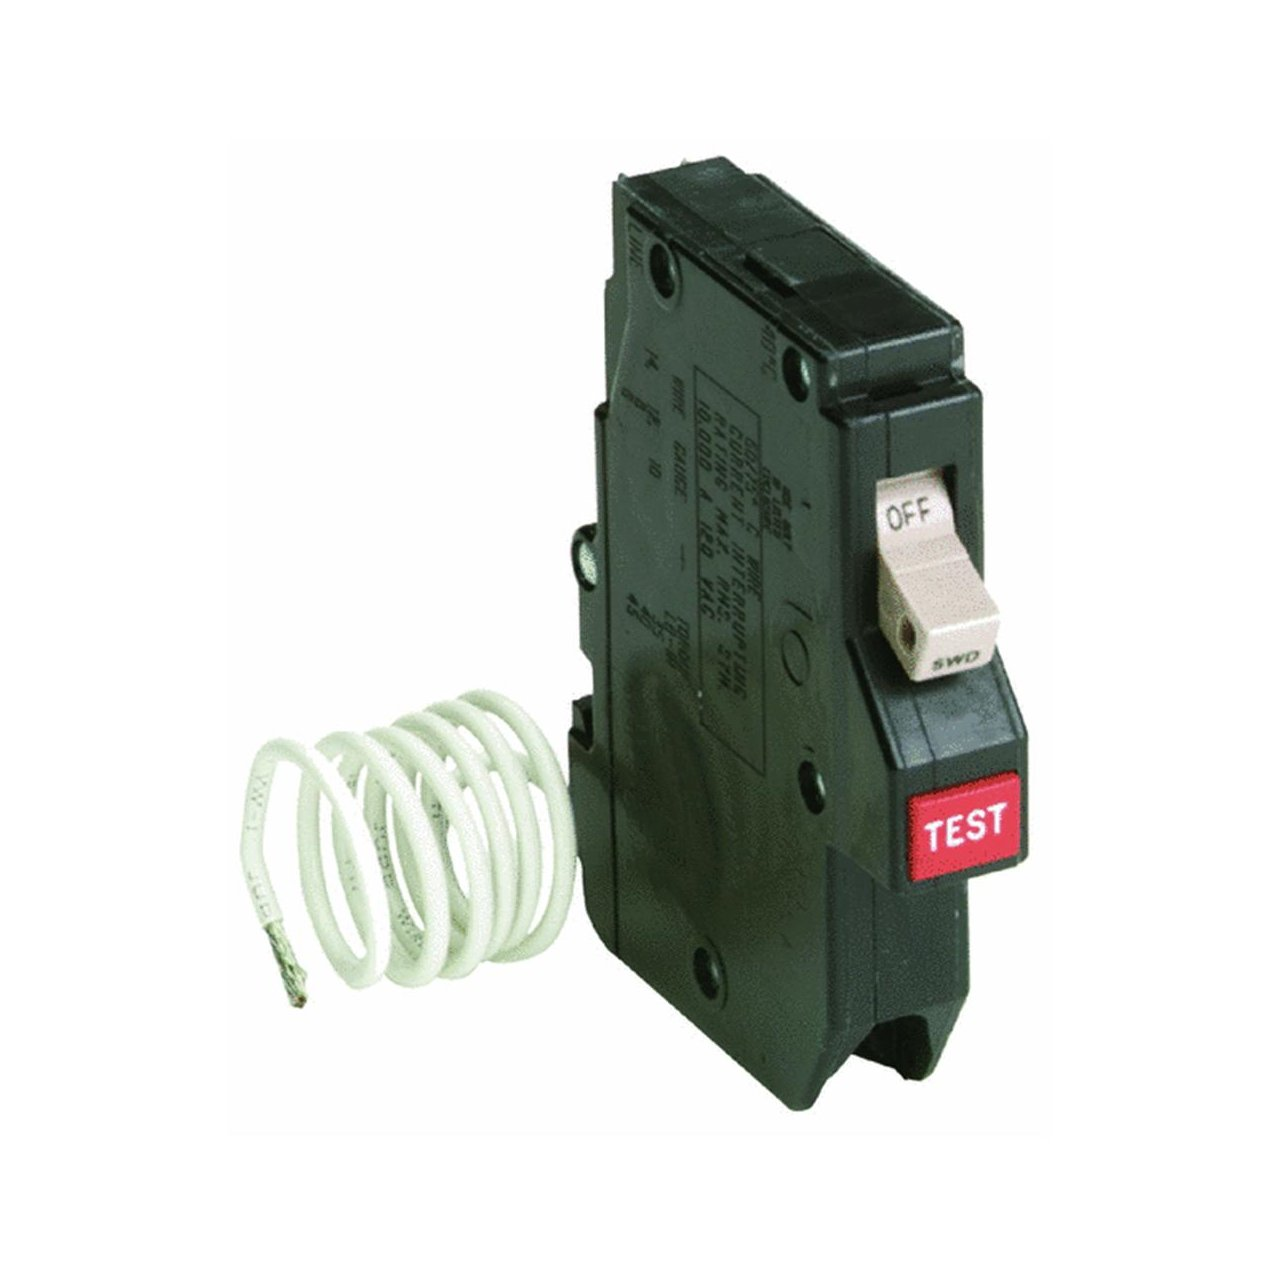 Best Rated In Circuit Breakers Helpful Customer Reviews How Do Work The Stock Markets Eaton Corporation Ch120gfcs Single Pole Ground Fault Breaker 20a Product Image